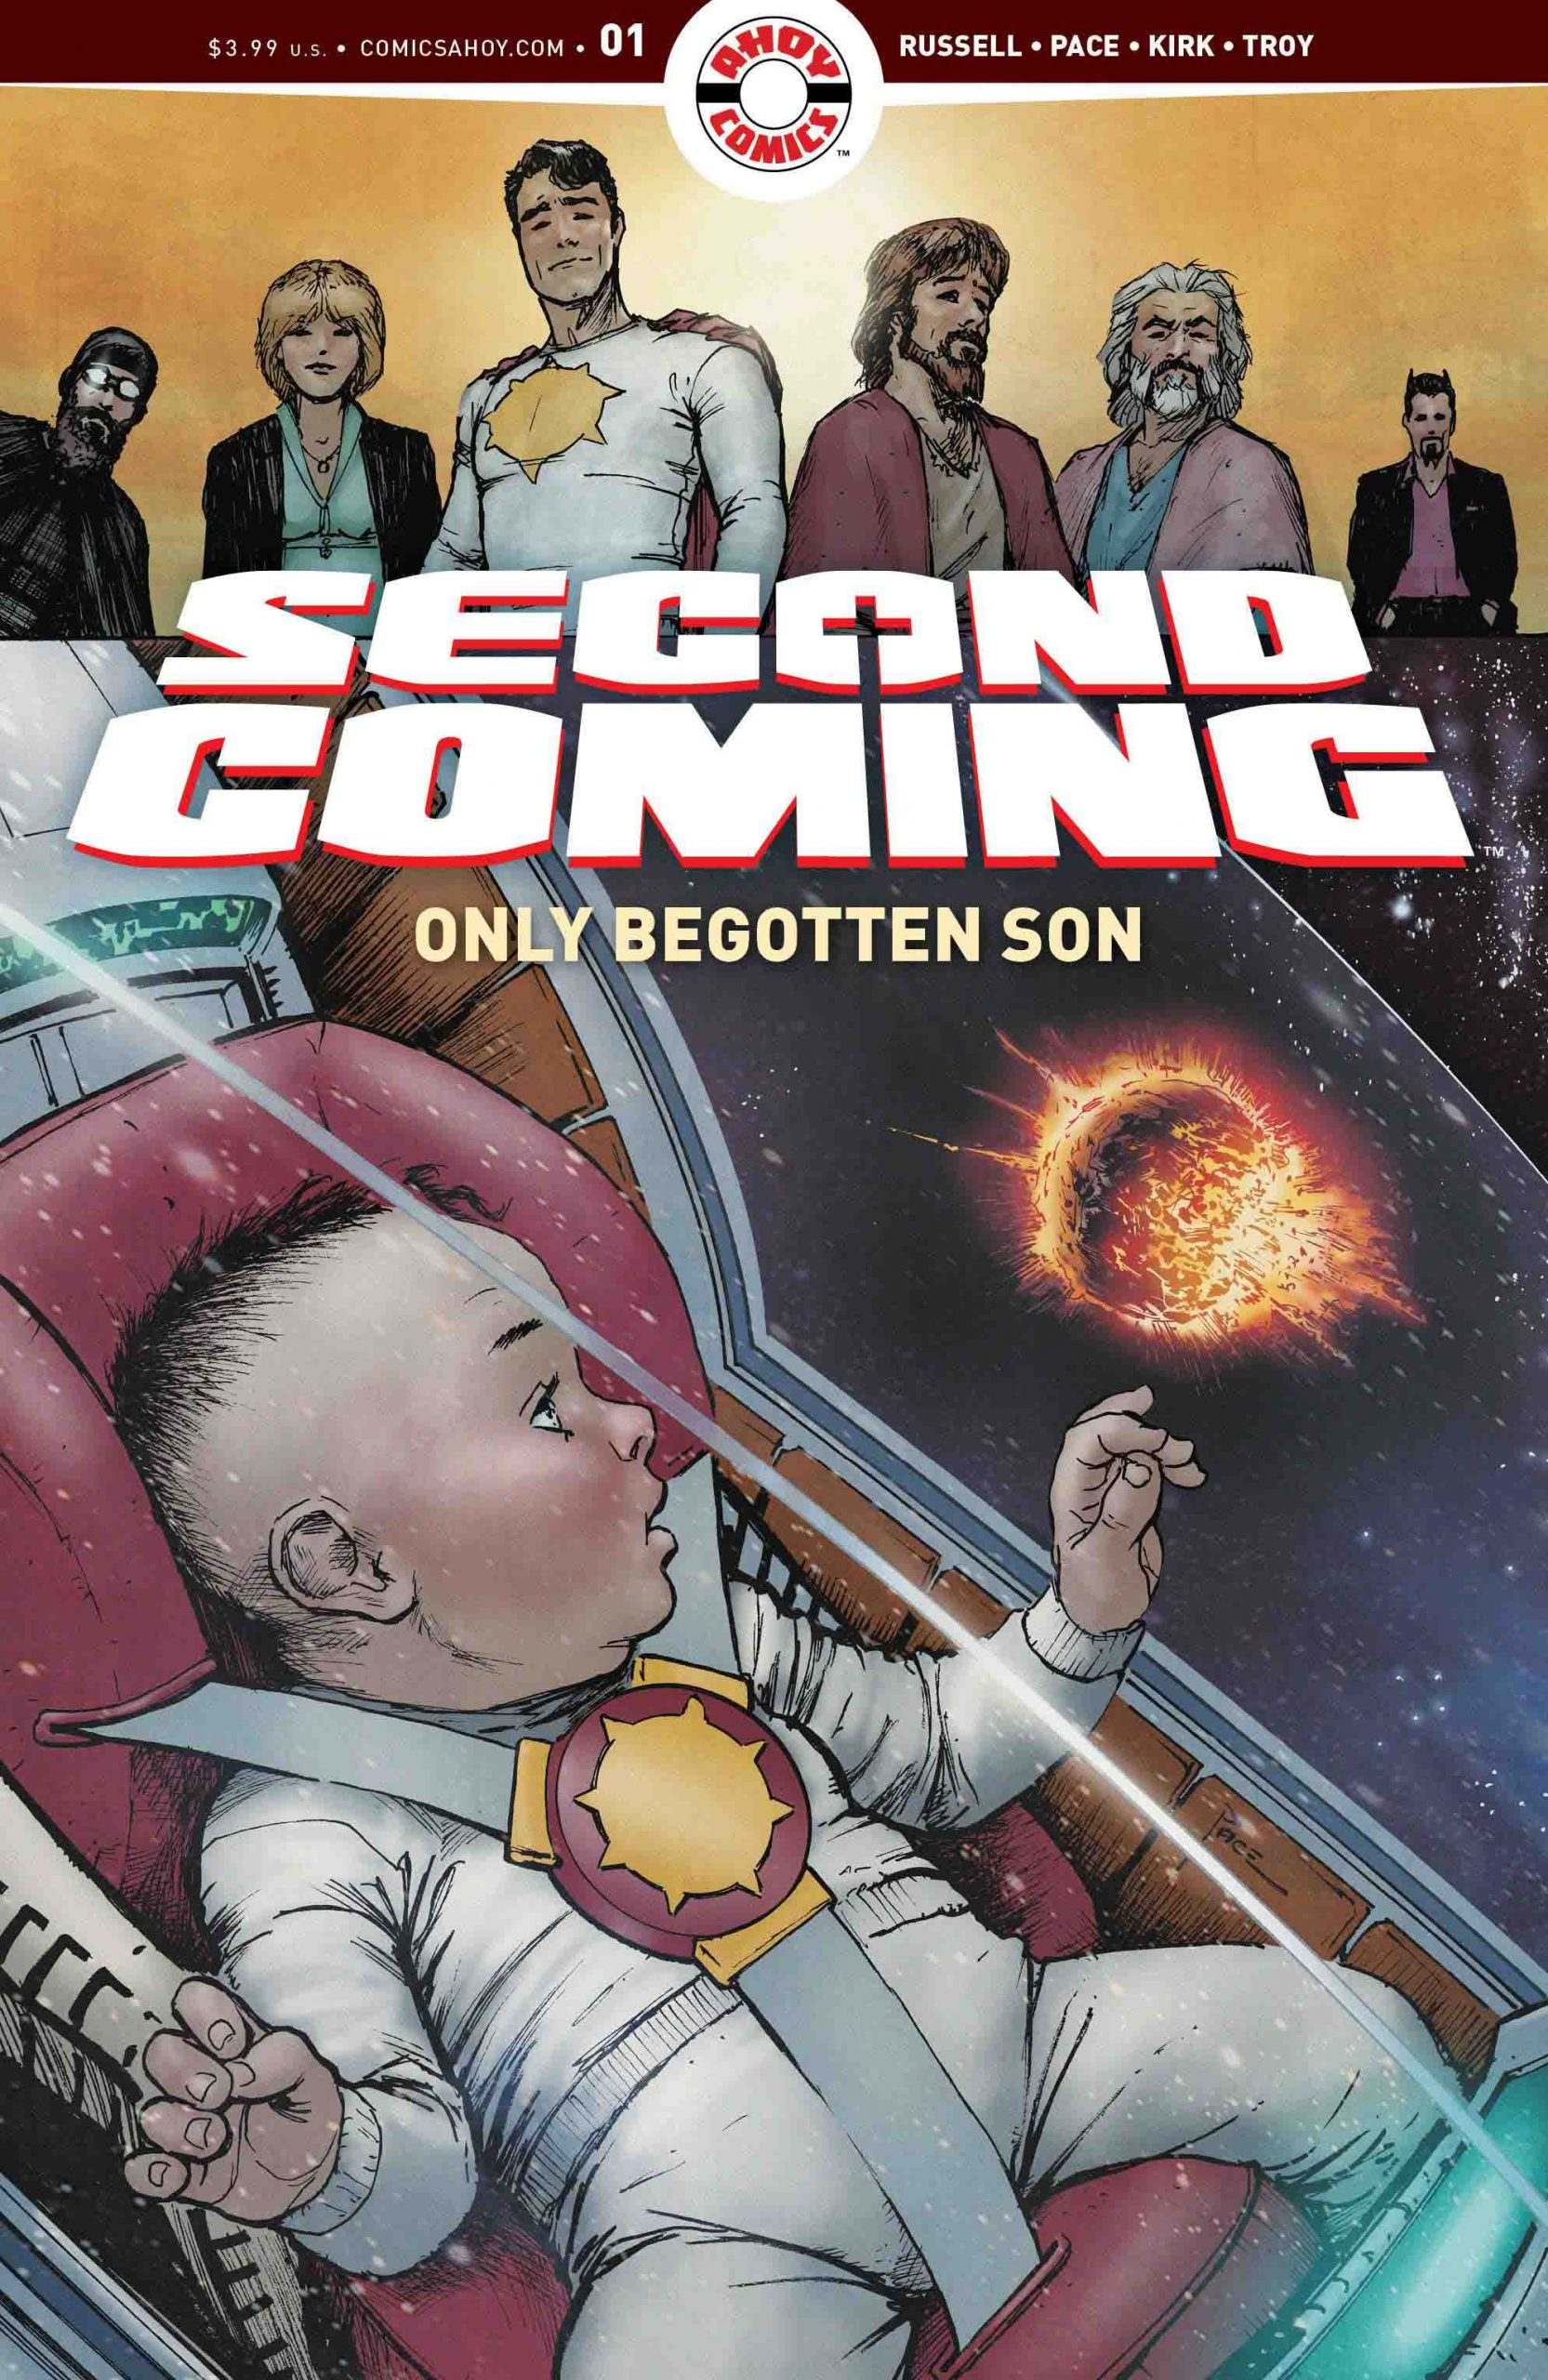 The Second Coming: Only Begotten Son